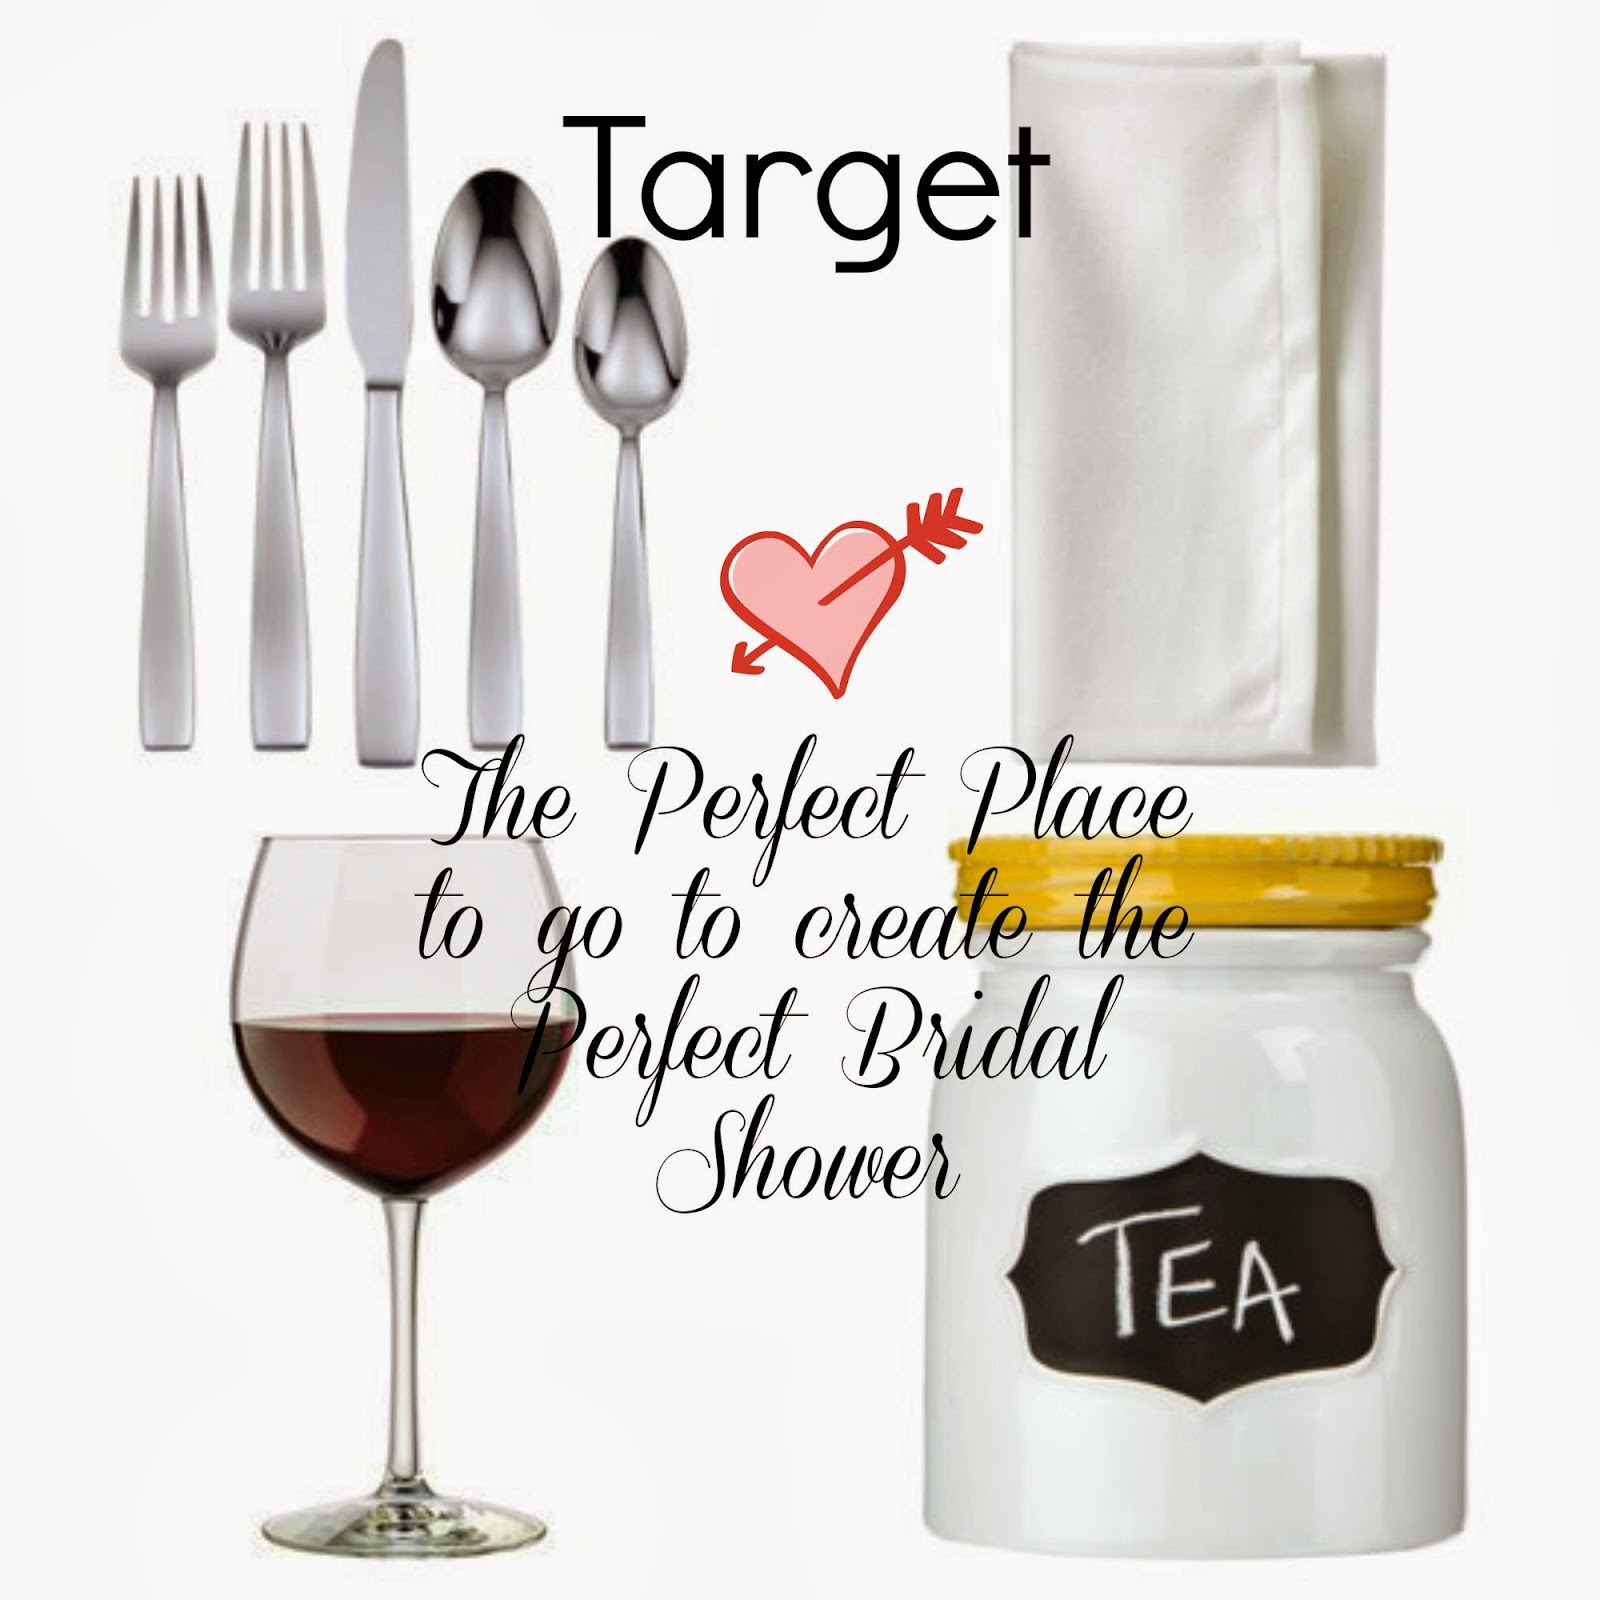 ... Place to Plan a Perfect Bridal ShowerTarget Gift Card Giveaway